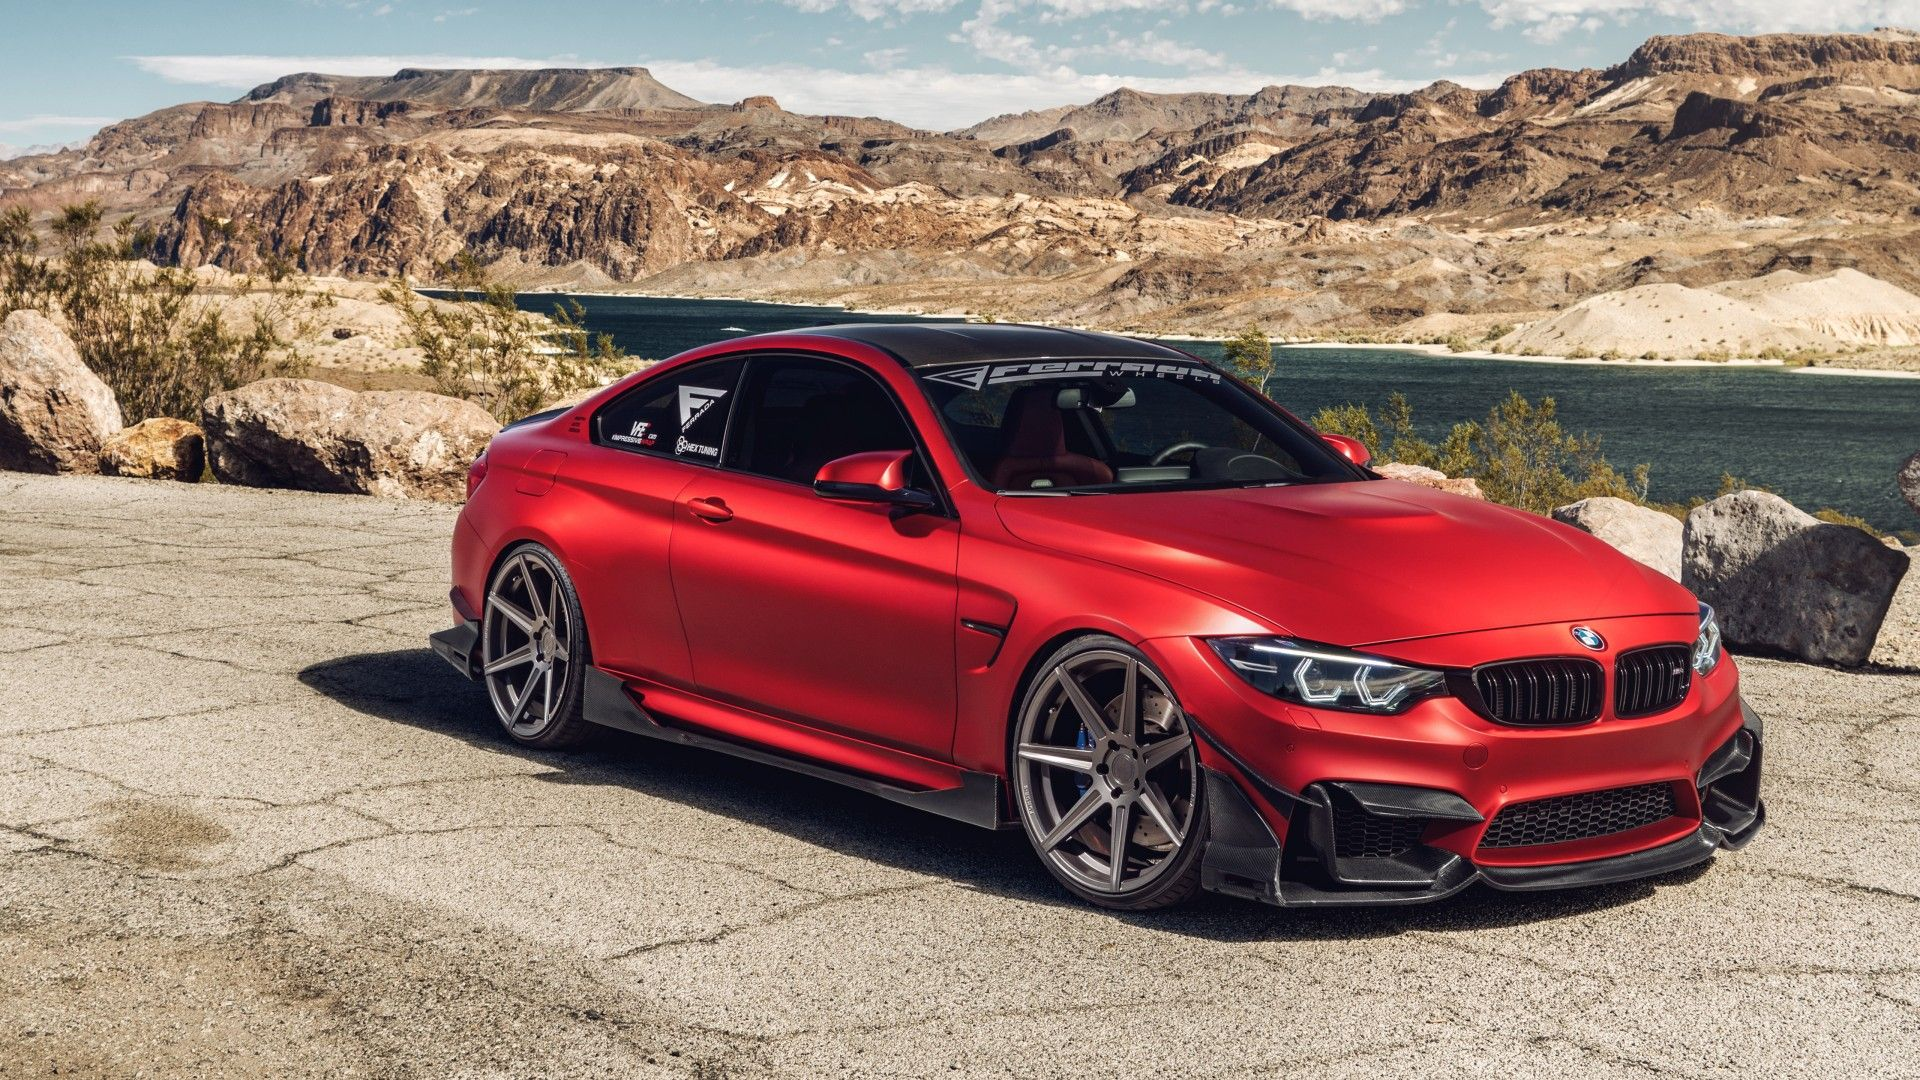 Bmw M4 wallpaper for pc